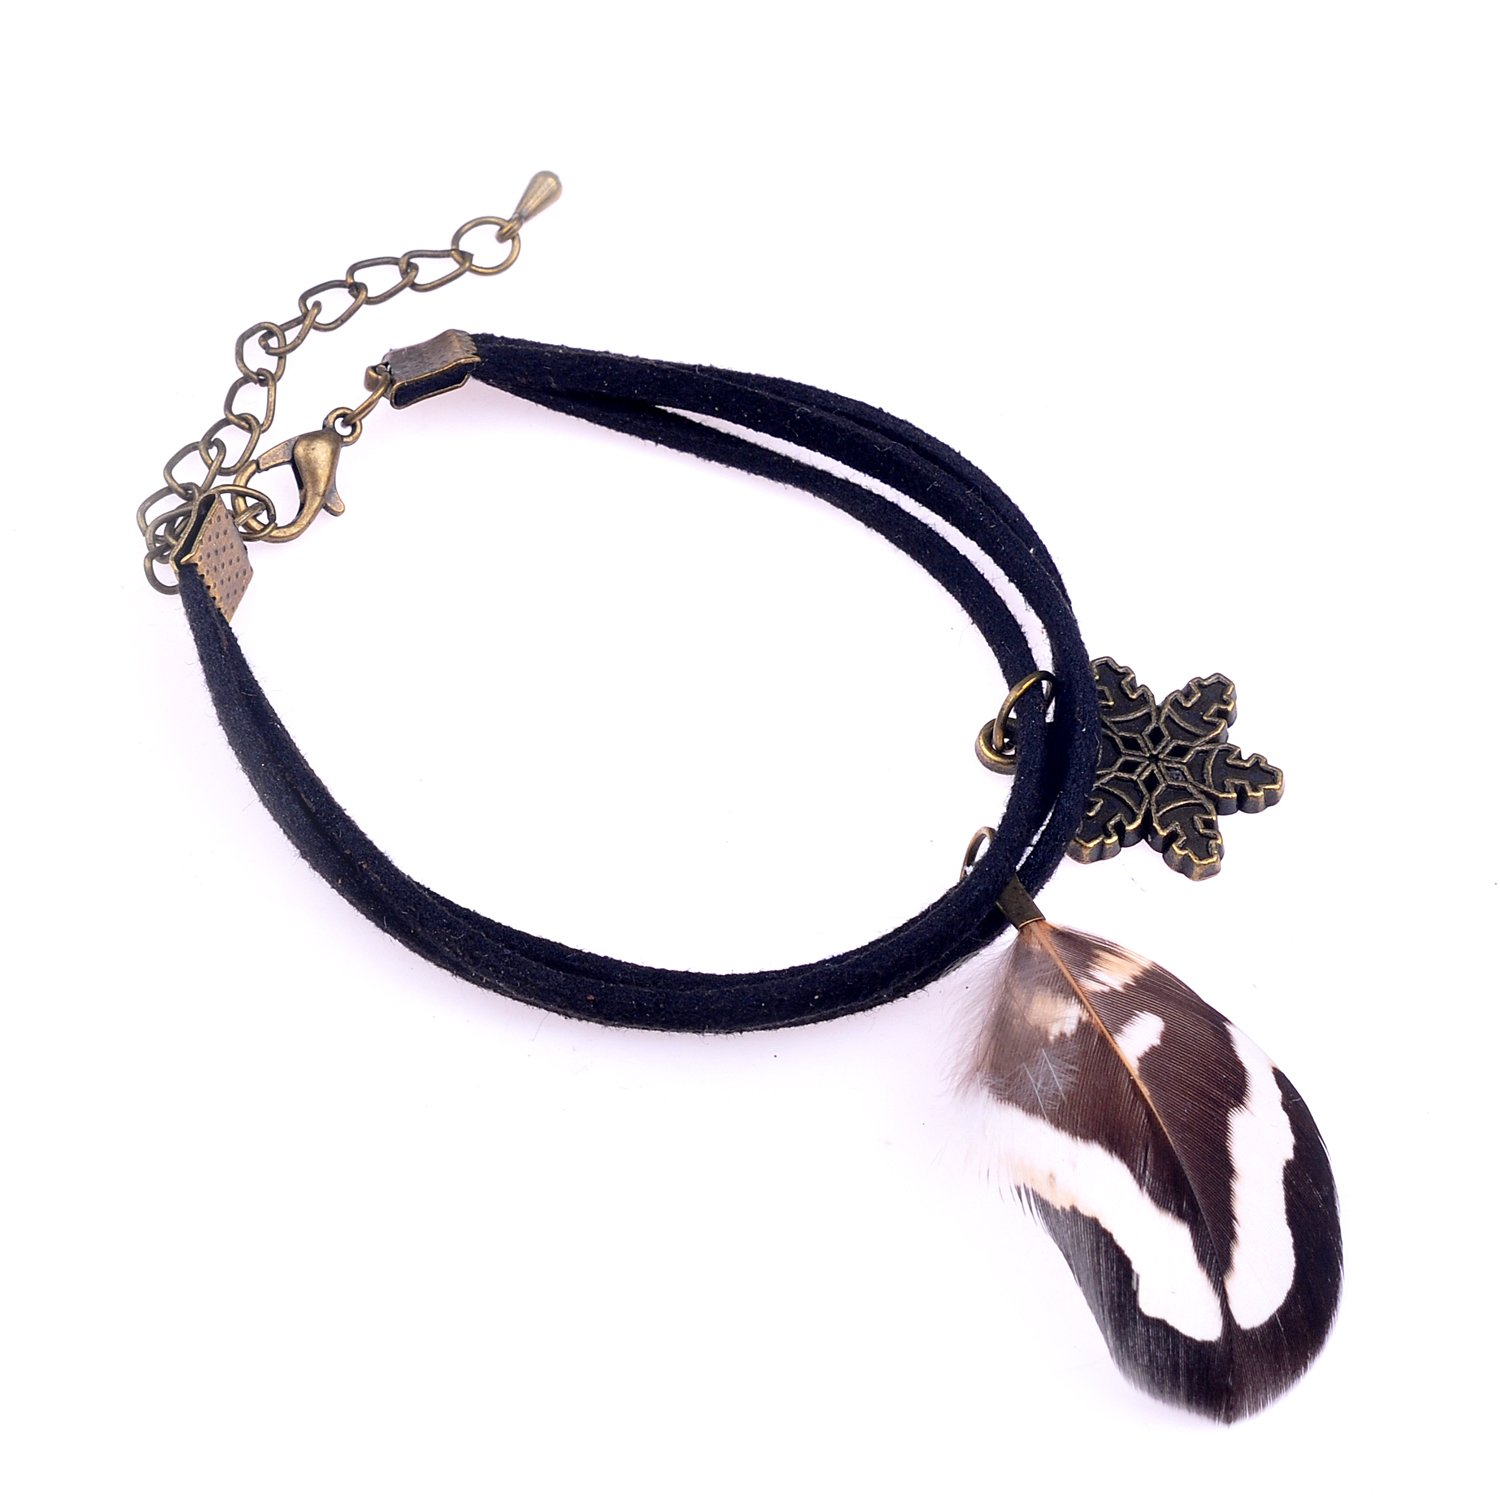 bl003016 LUREME Native American Jewelry Pheasant Feather with Star Pendant Leather Chain Bracelets